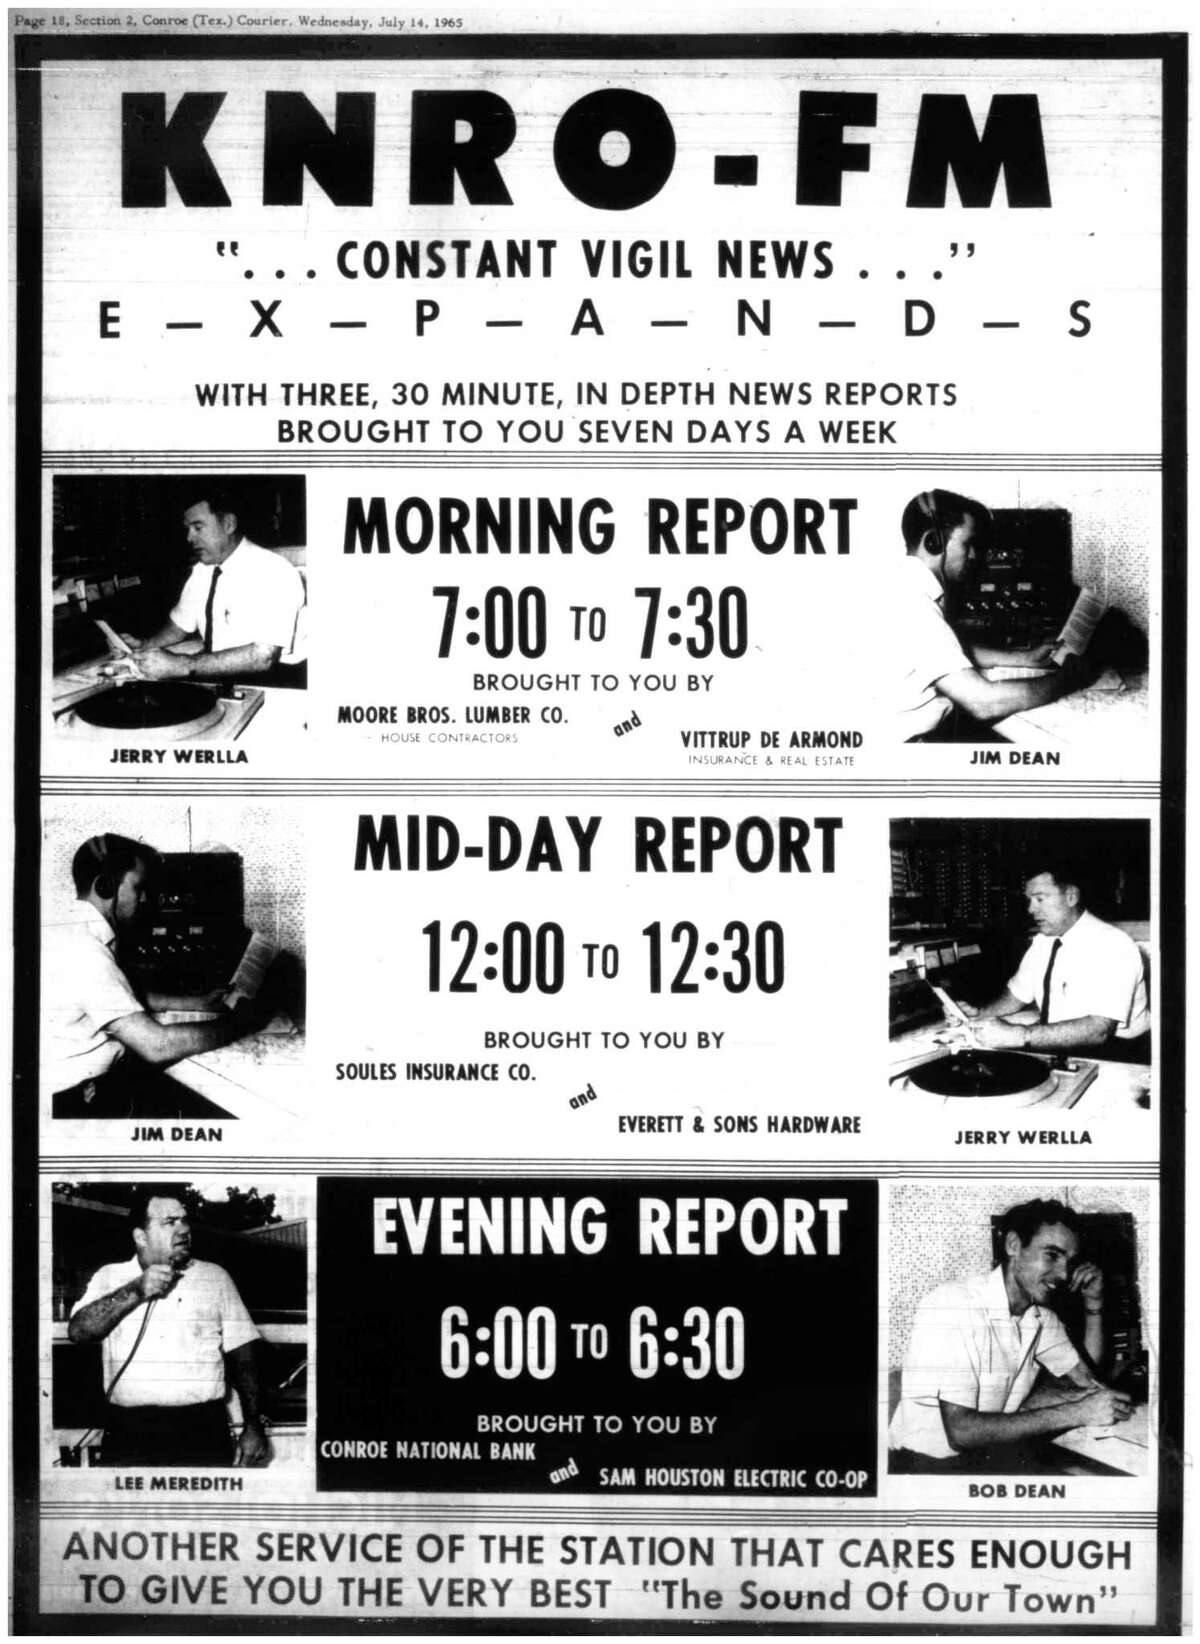 An advertisement for FM radio station KNRO in Conroe.